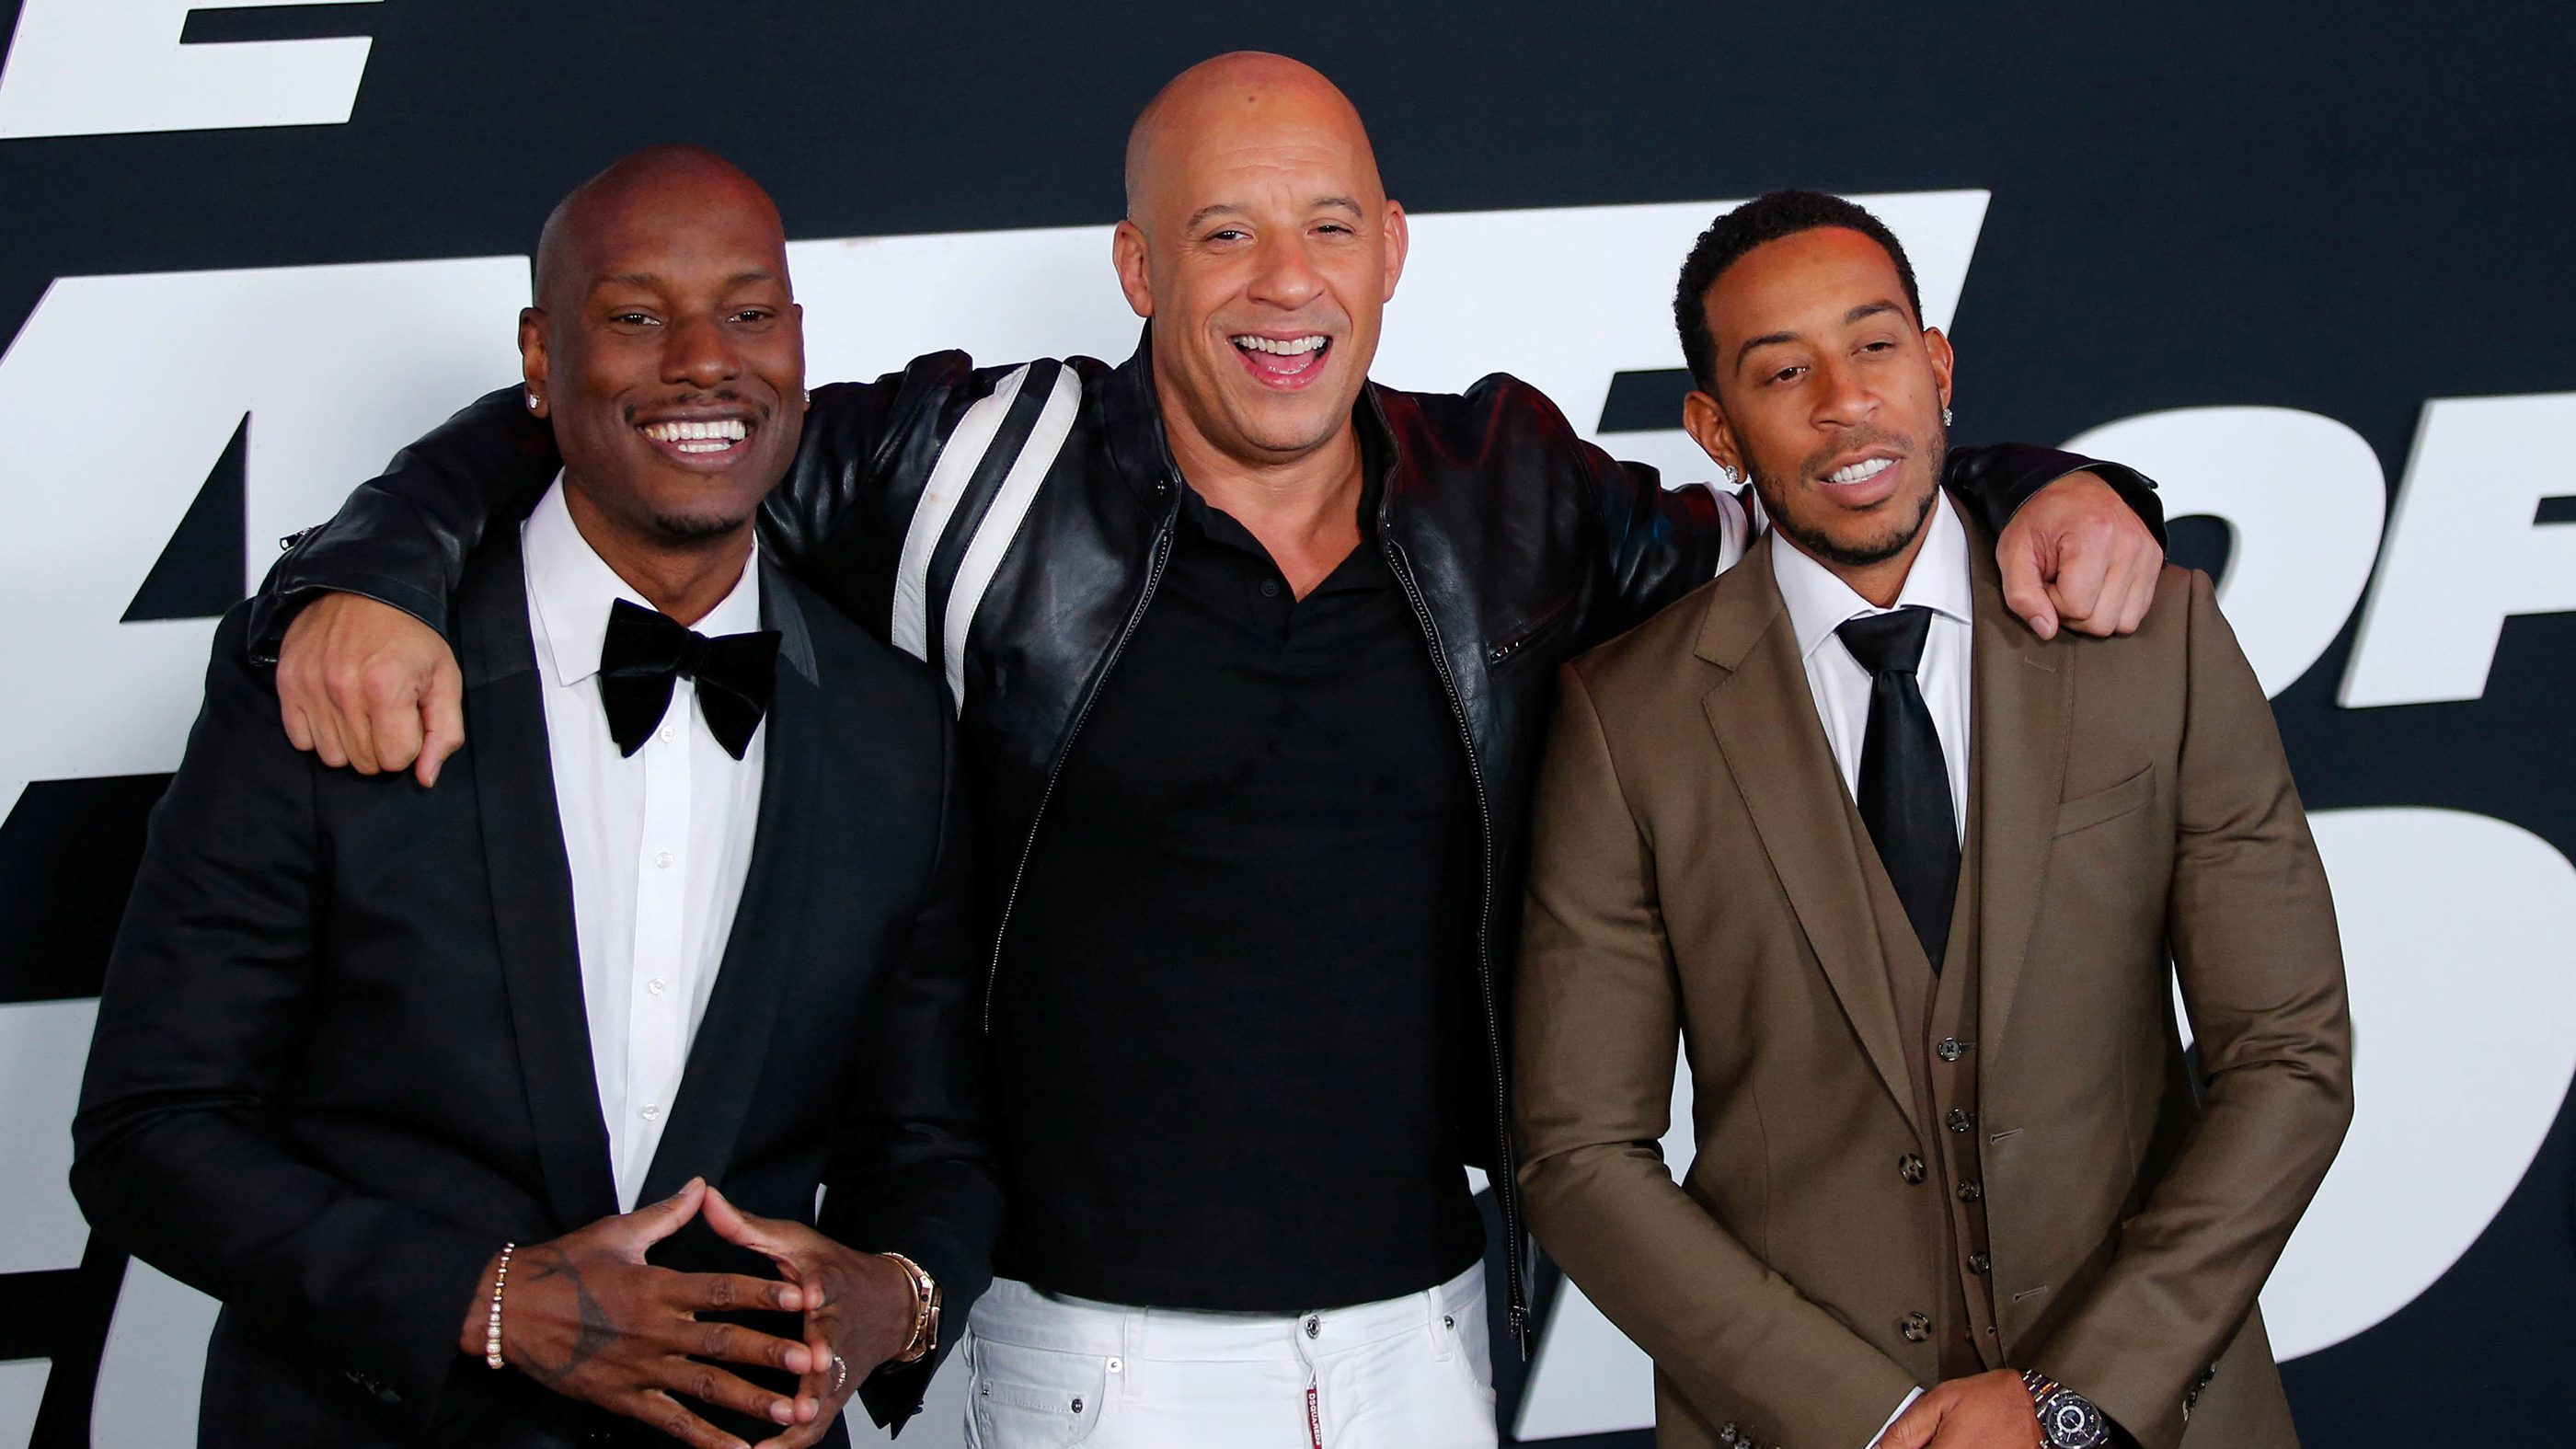 Actors Tyrese Gibson, Vin Diesel and Ludacris attend 'The Fate Of The Furious' New York premiere at Radio City Music Hall in New York, U.S. April 8, 2017. REUTERS/Eduardo Munoz - RTX34RGV